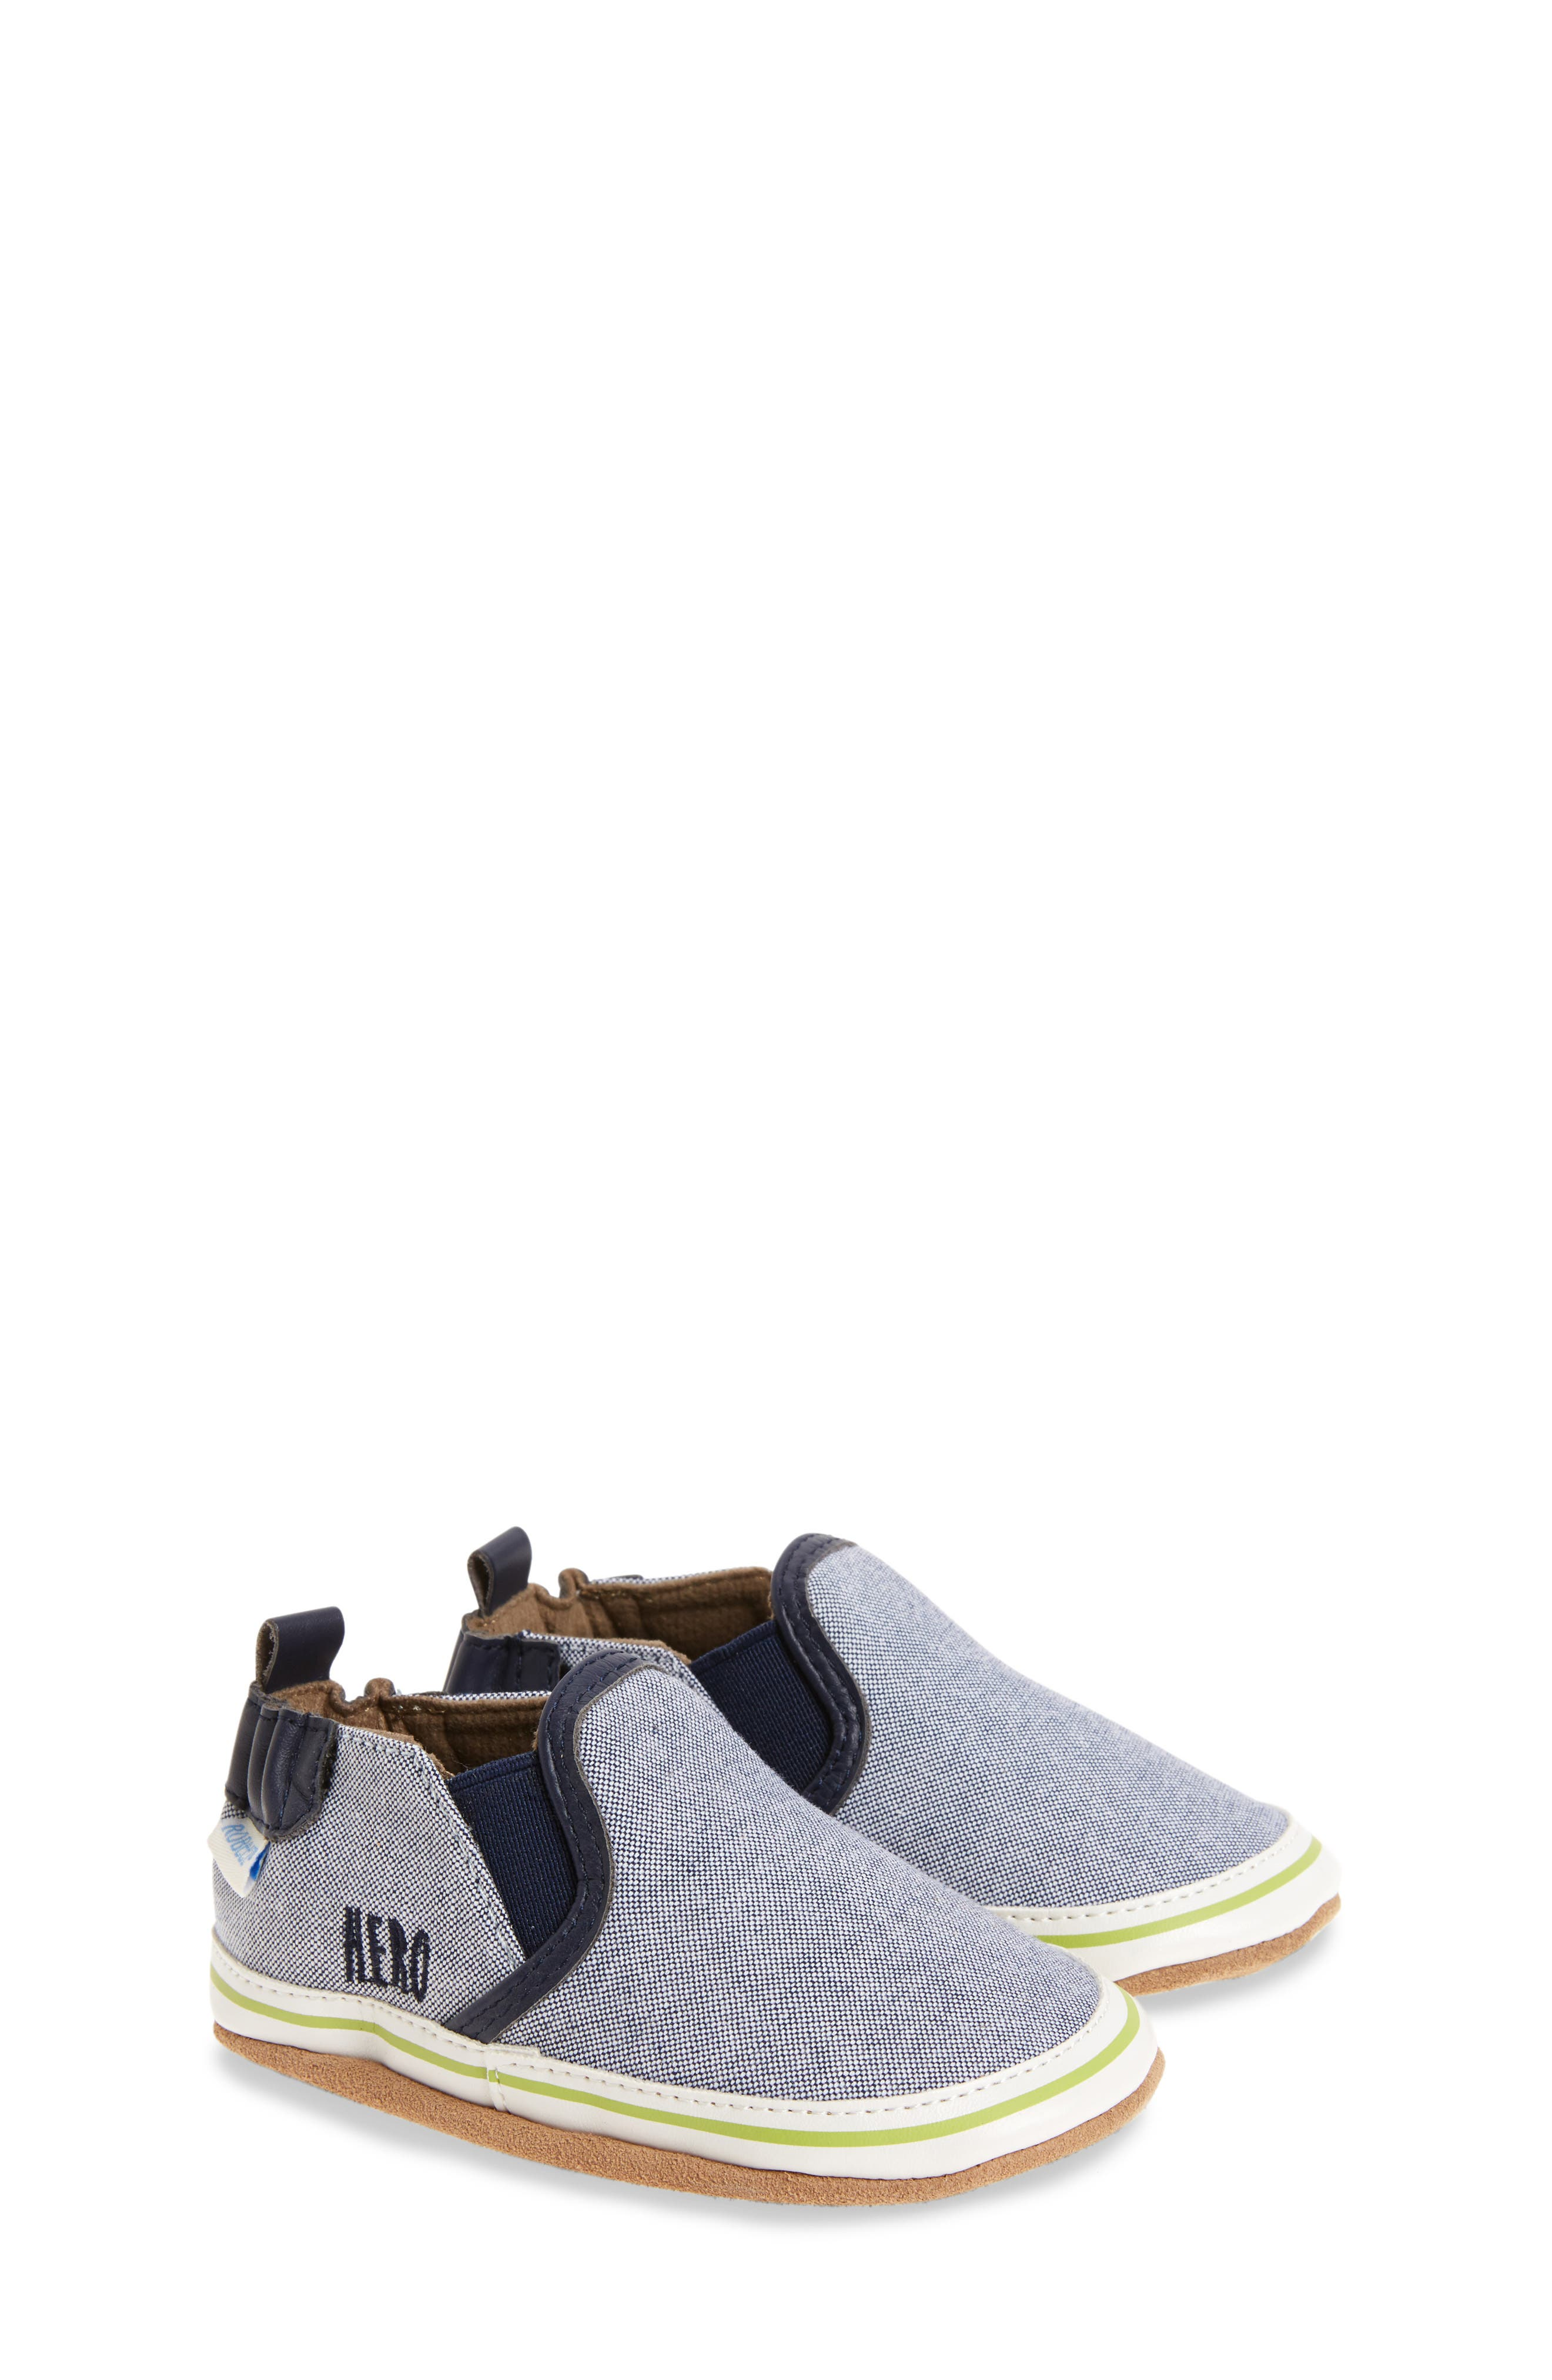 ROBEEZ<SUP>®</SUP> Liam Cool Dude Crib Shoe